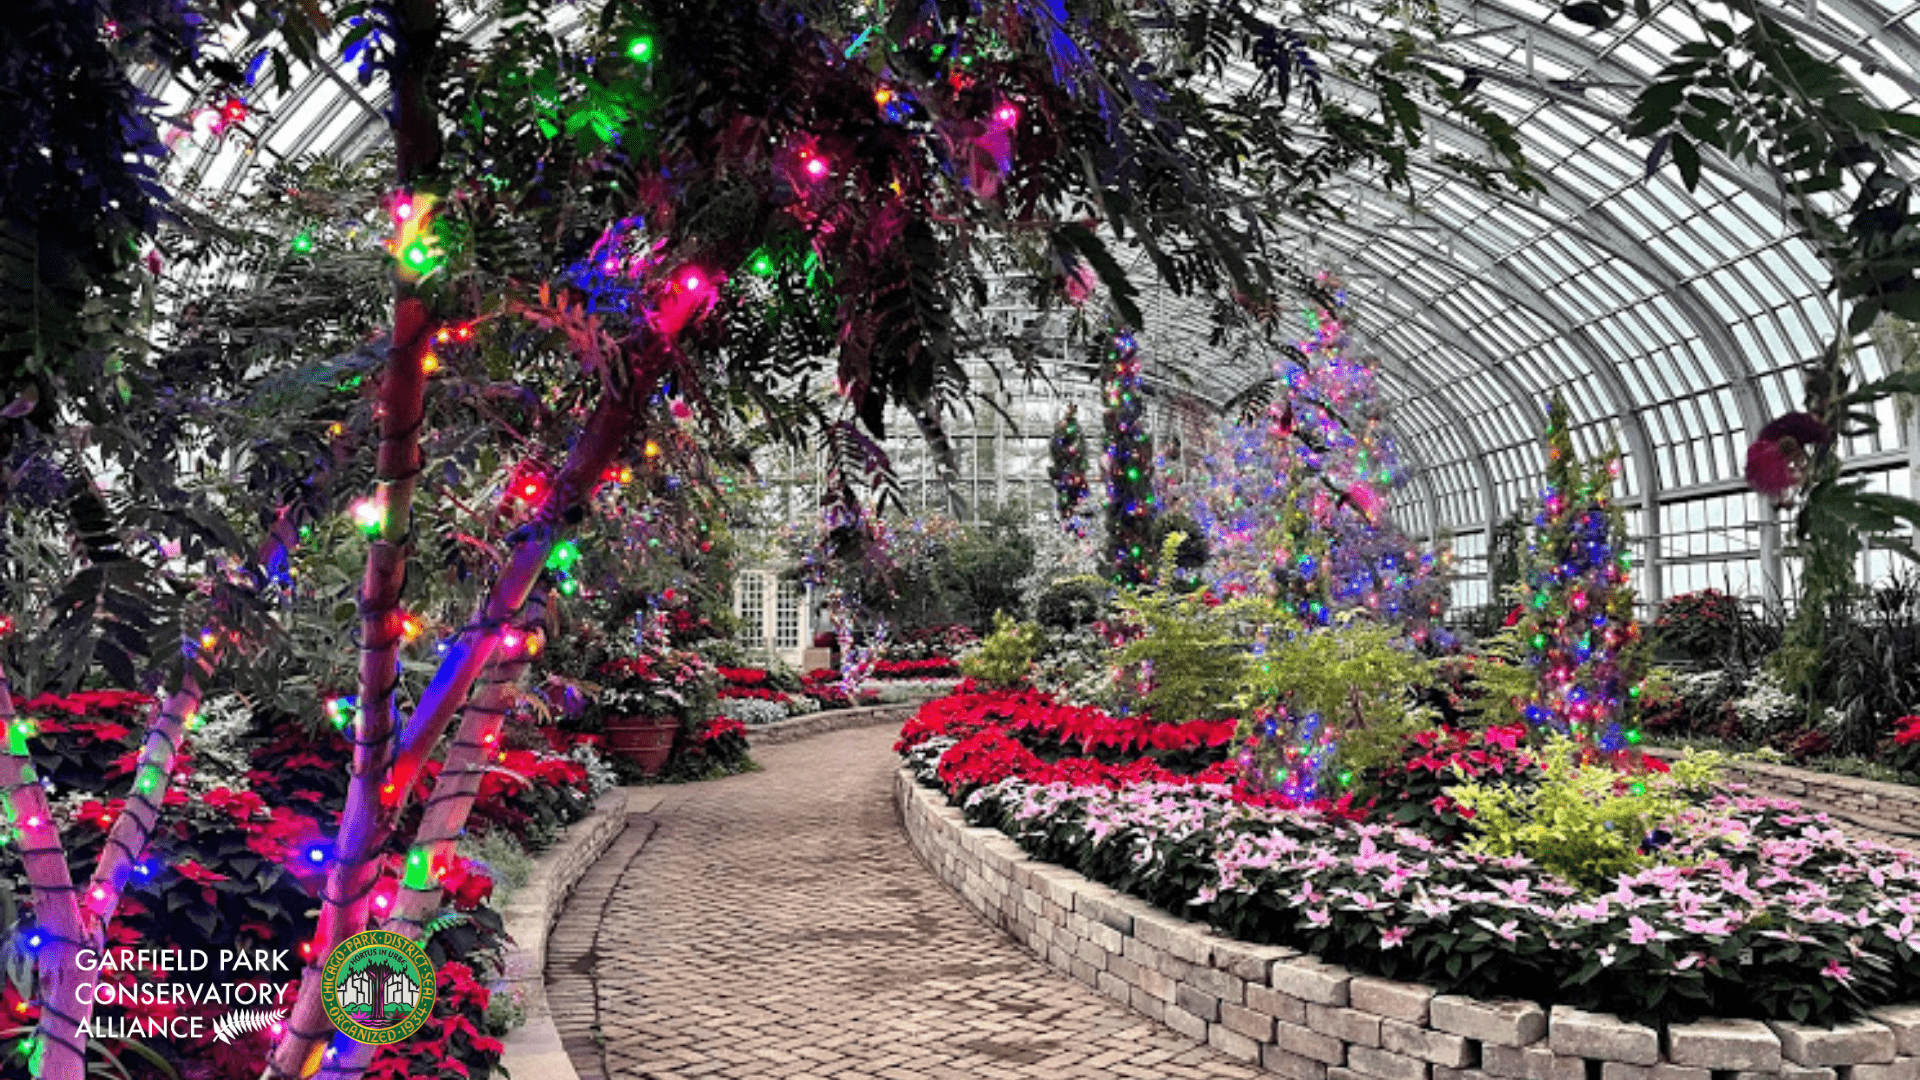 Tree wrapped in colorful twinkle lights with the winter flower show filled with poinsettias and greenery in the background